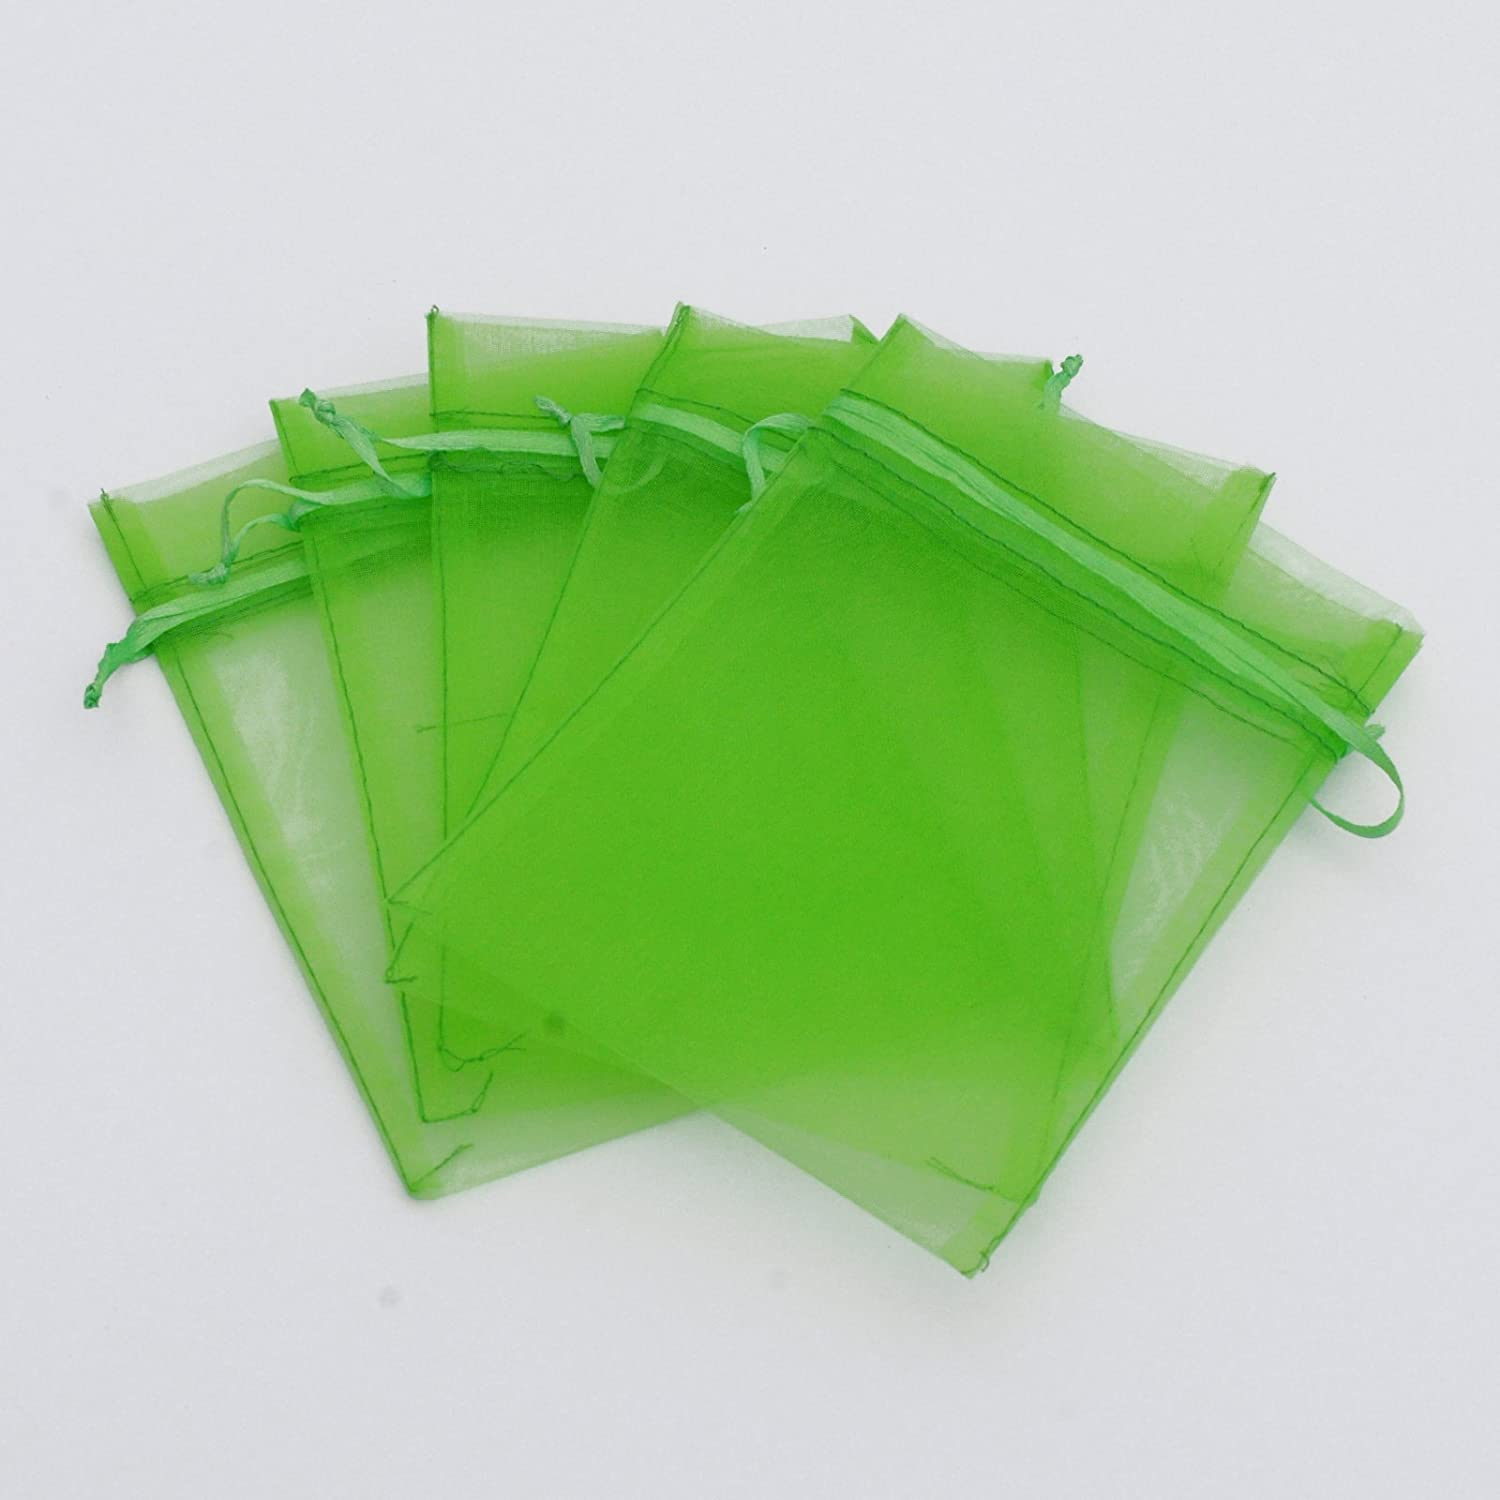 100 4x6 Toffee Organza bags 4x6 inch wedding favor bags beads jewelry bags